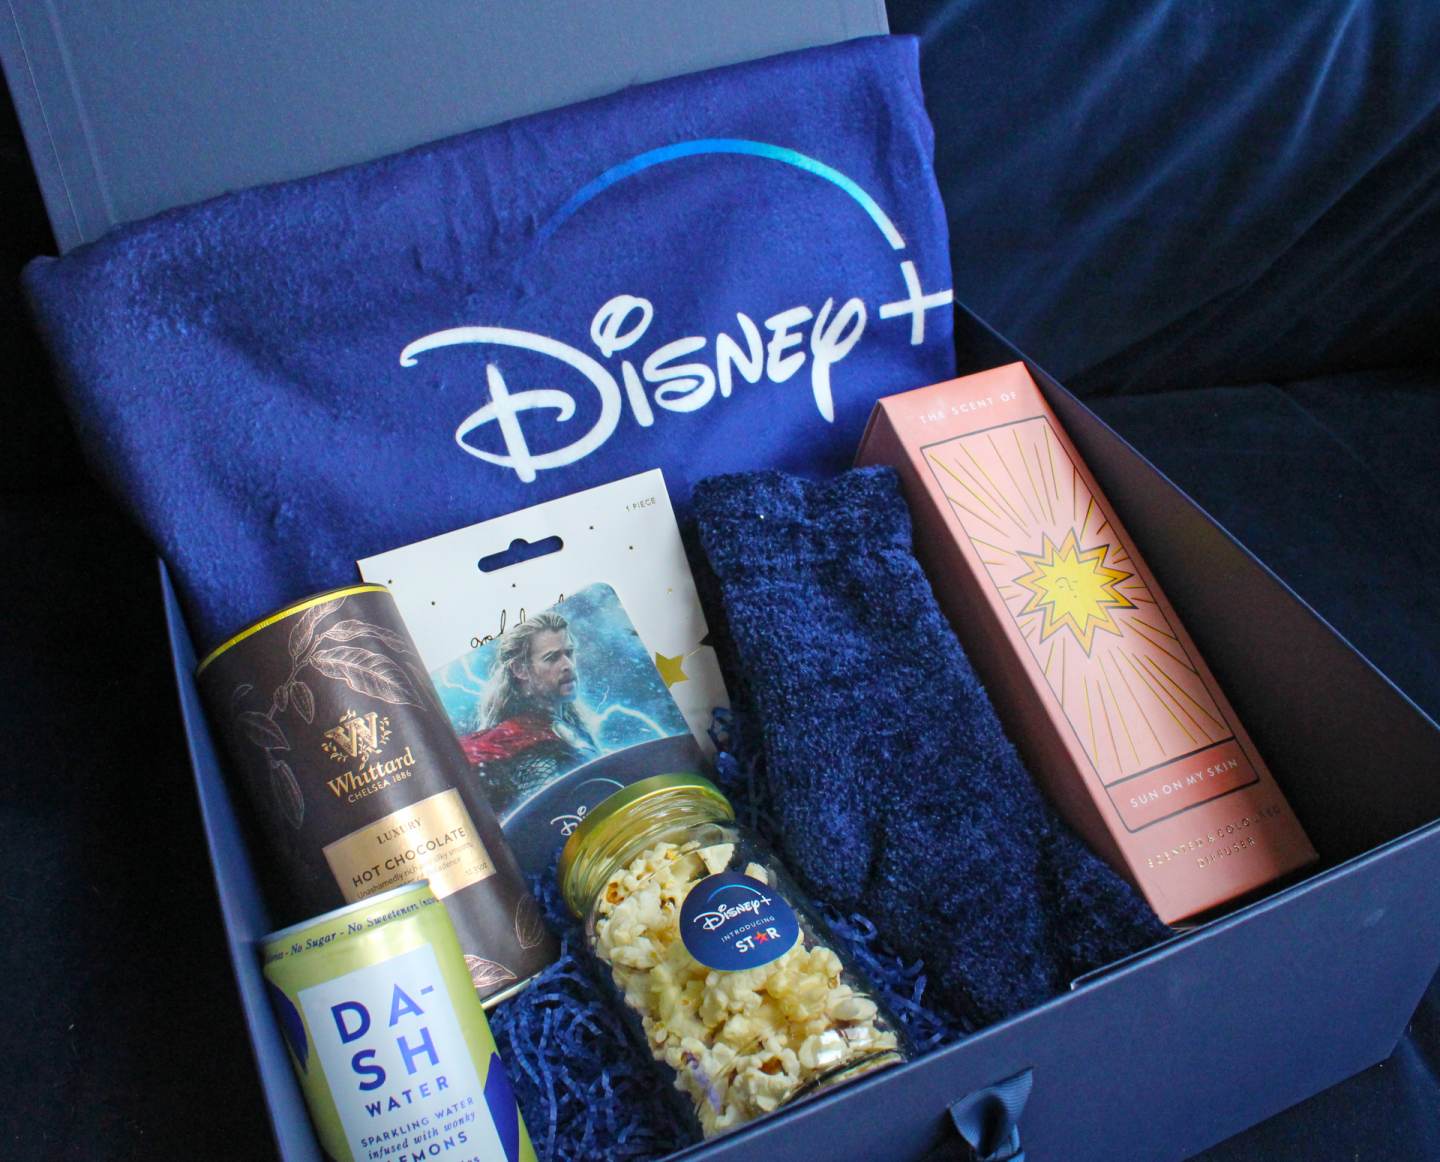 Disney+ gift box celebrating Star coming to the platform